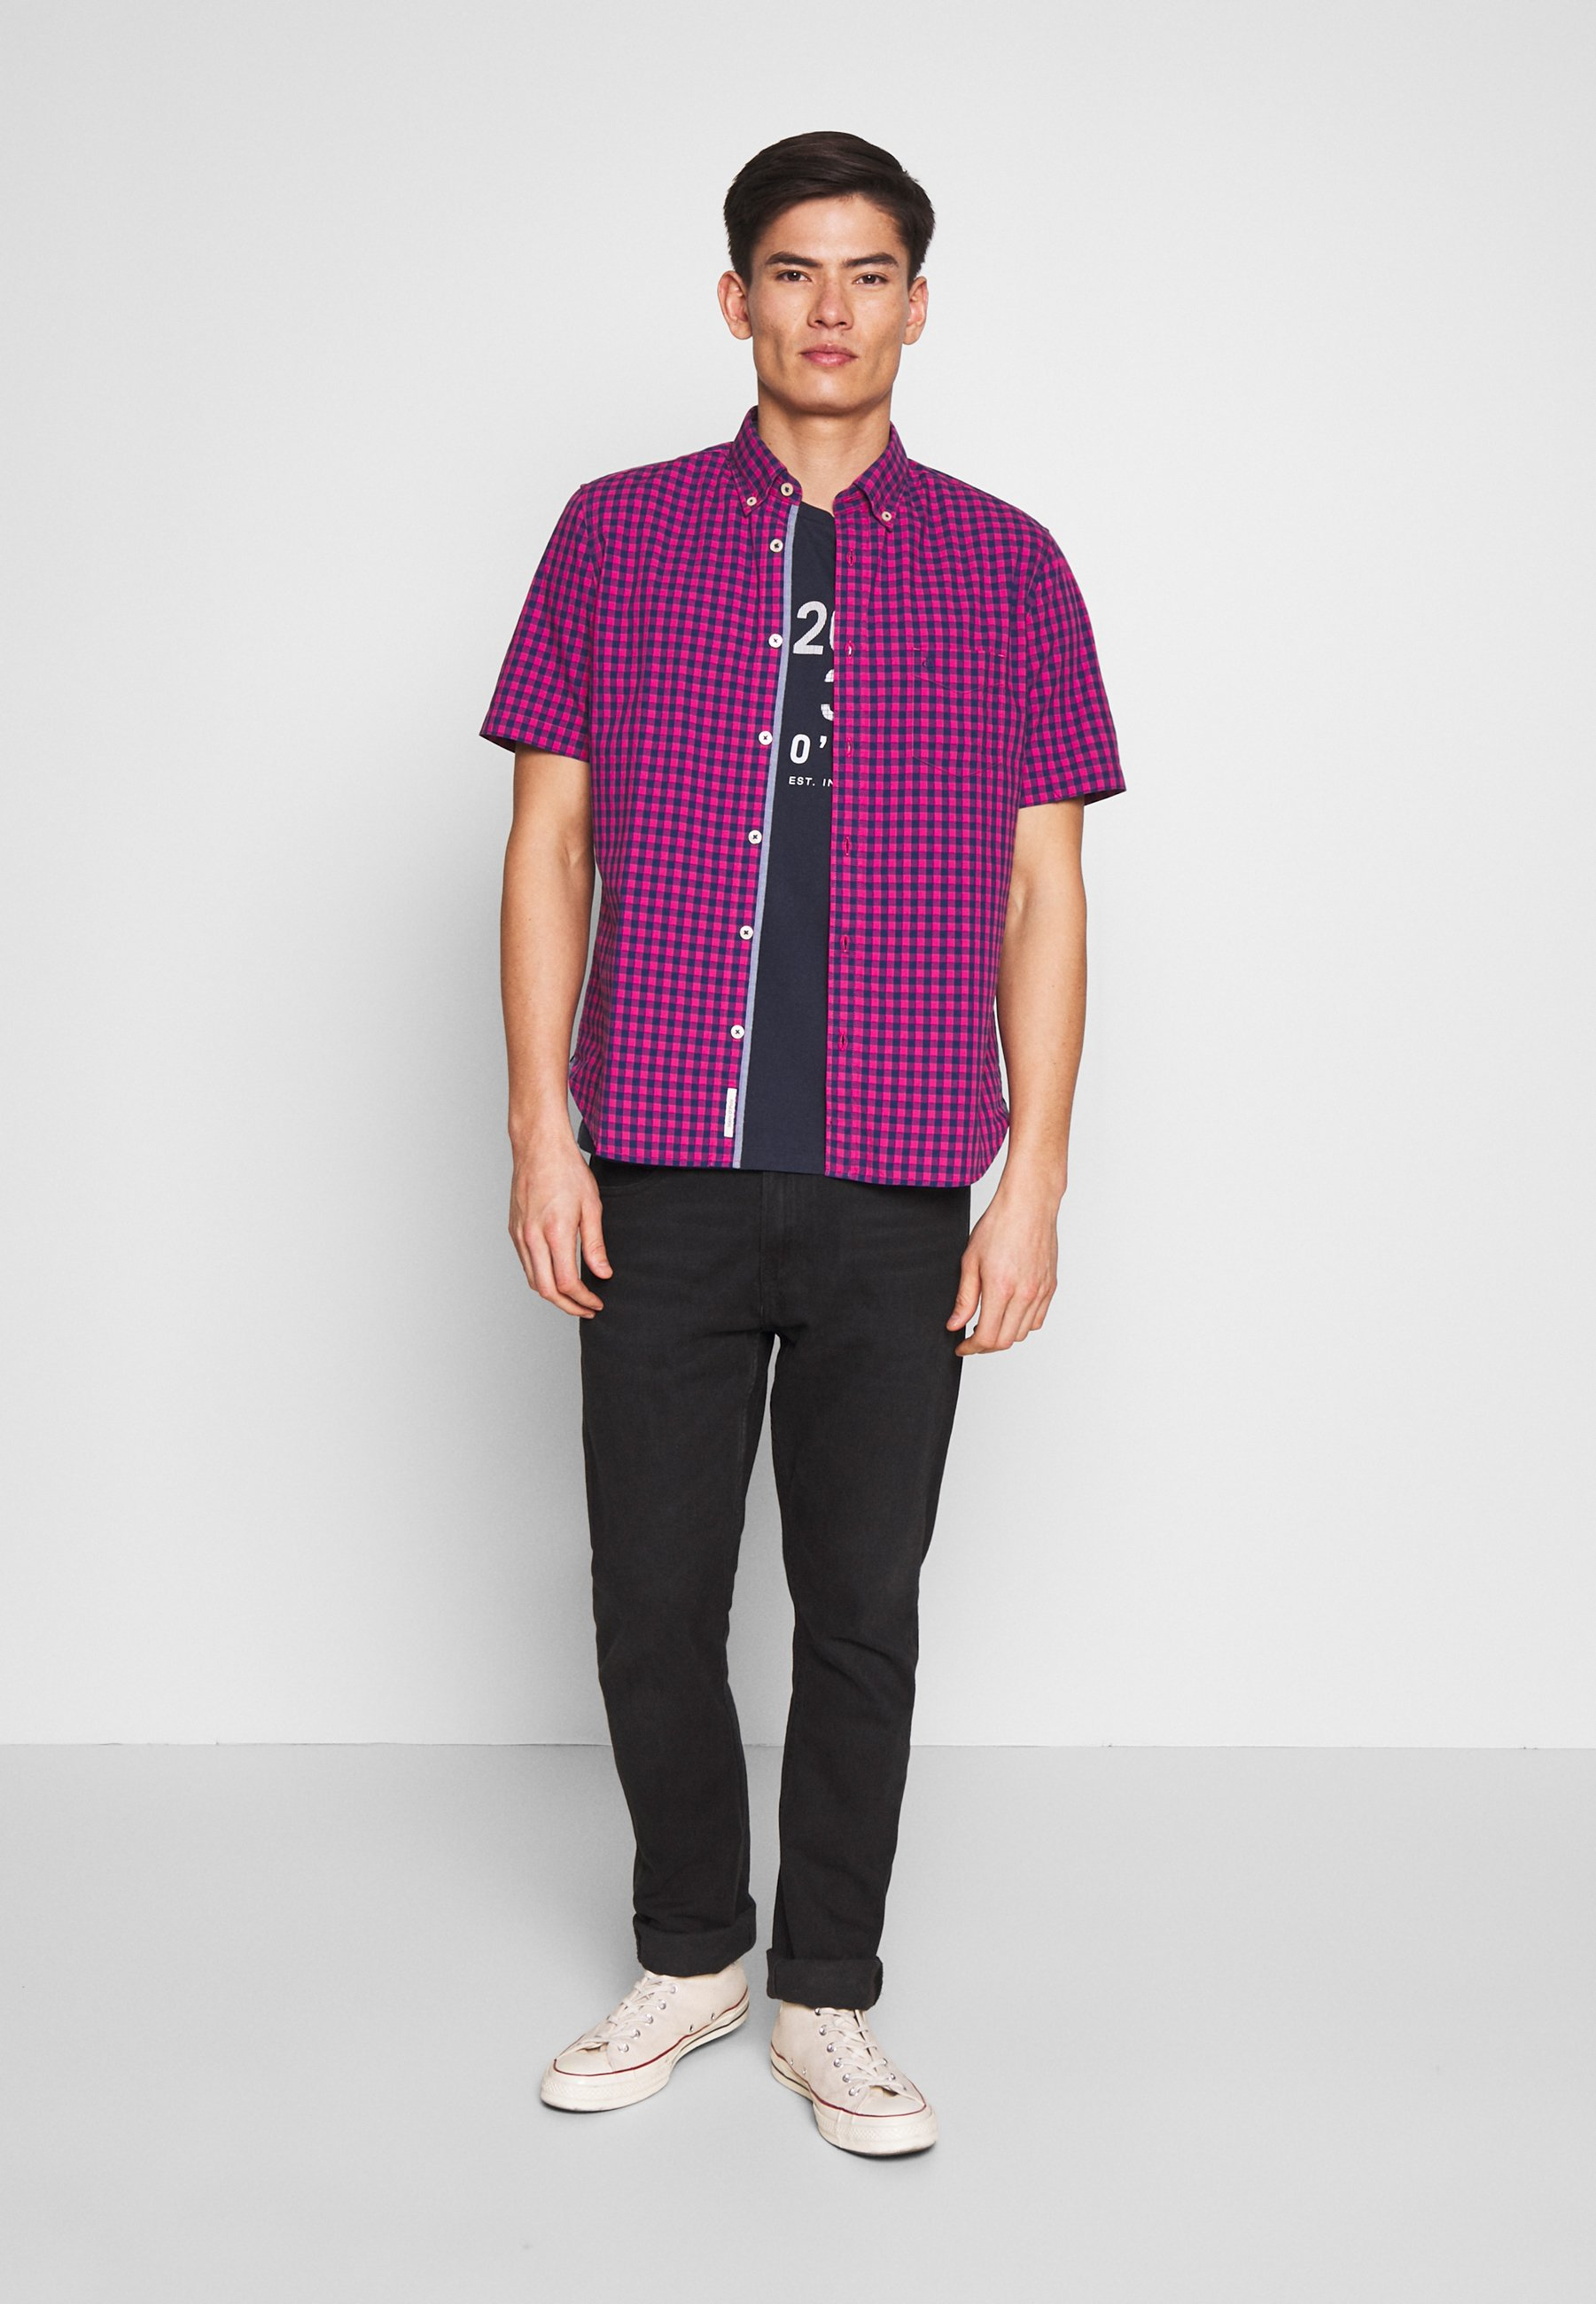 Marc O'polo T-shirt, Short Sleeve, Crew Neck, Artwork On Chest - T-shirt Med Print Total Eclipse